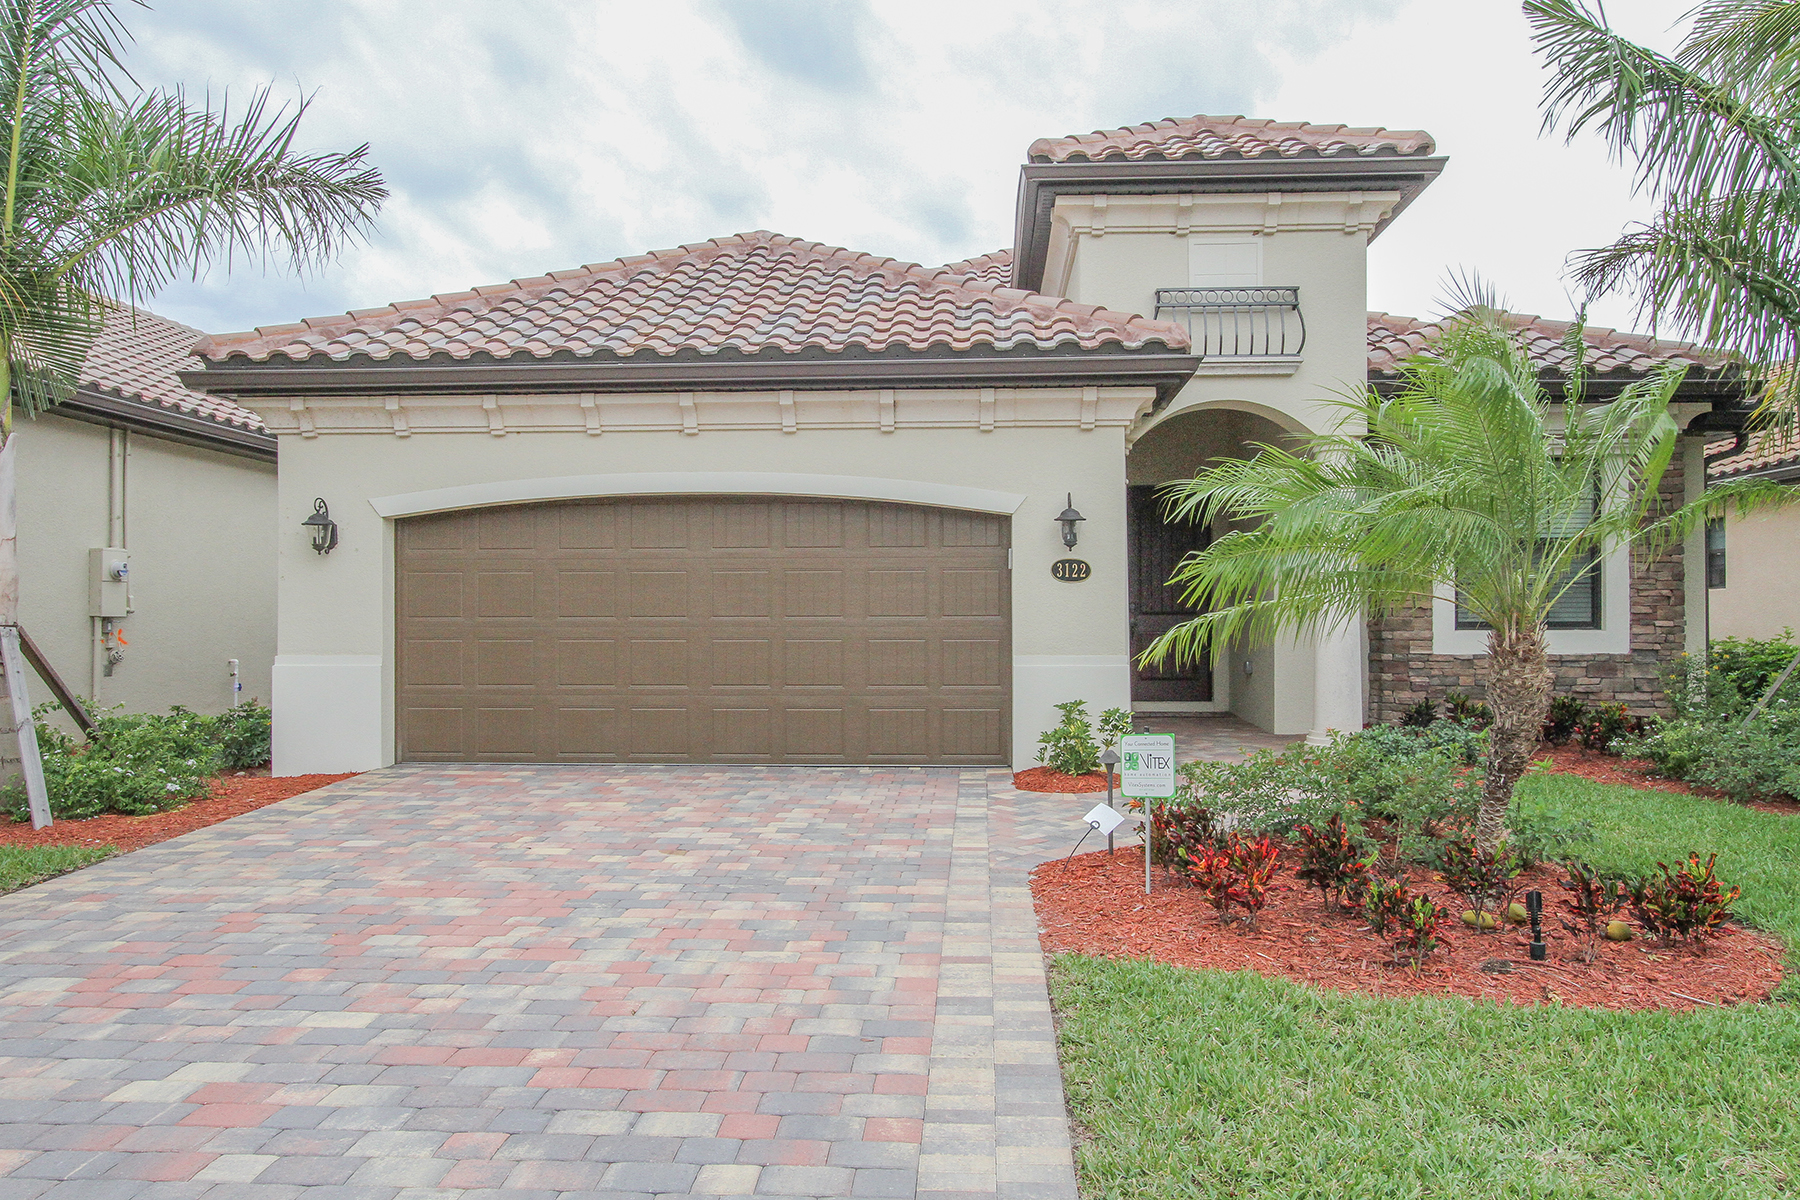 Single Family Home for Rent at FIDDLERS CREEK - MILLBROOK 3122 Aviamar Cir, Naples, Florida 34114 United States